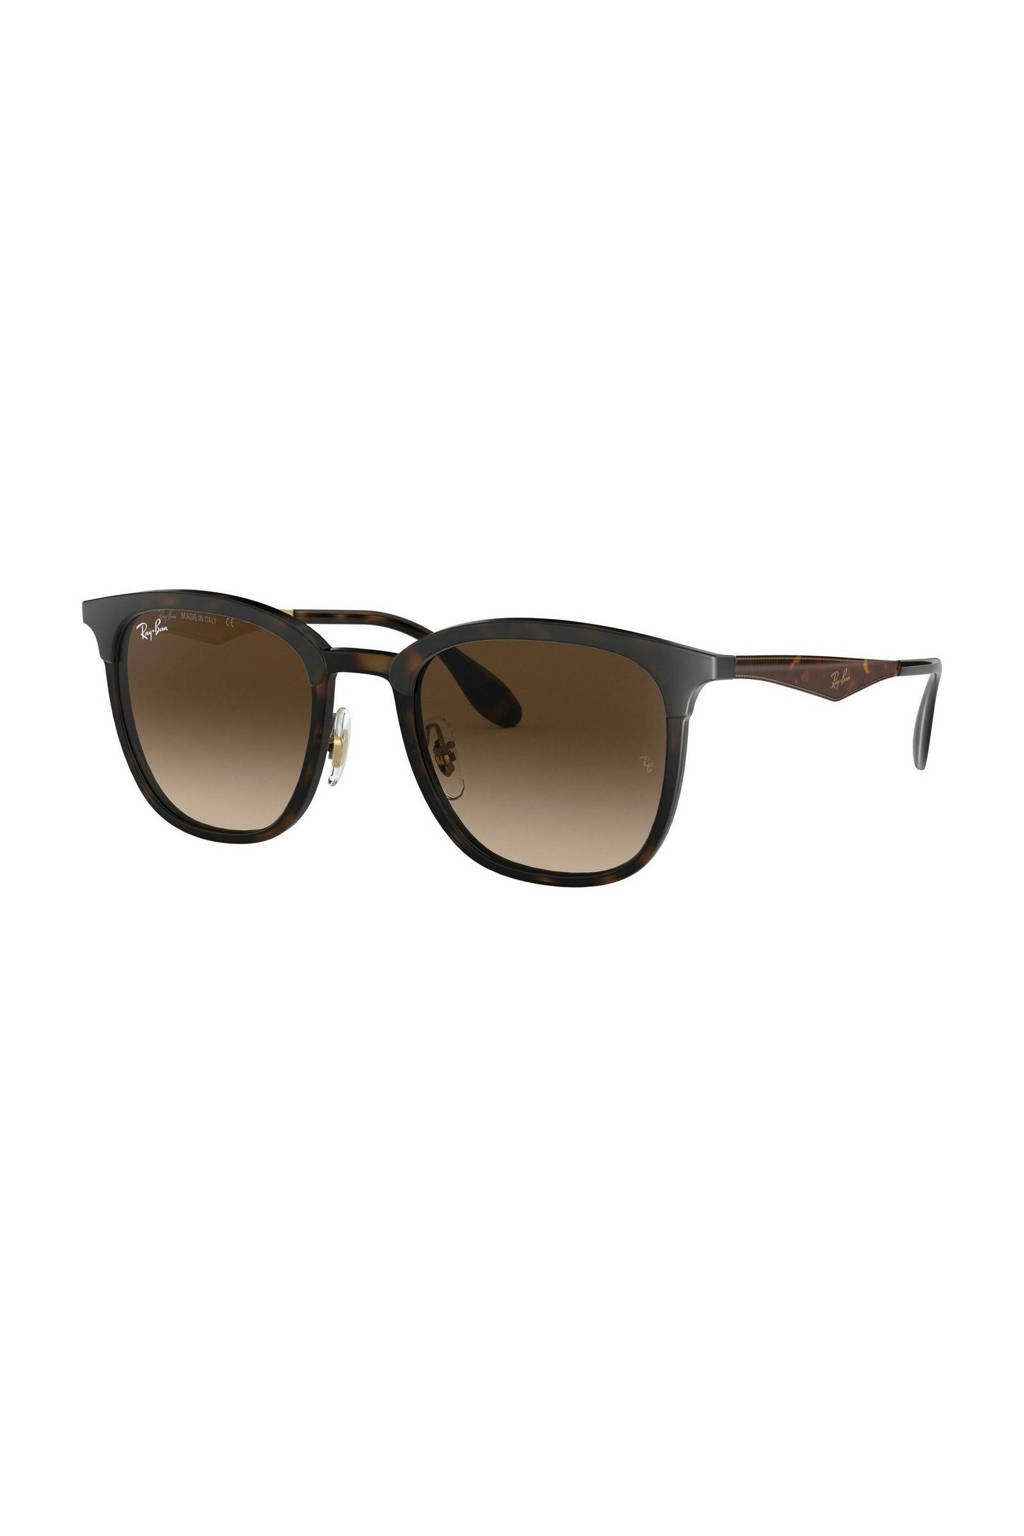 Ray-Ban zonnebril 0RB4278, Bruin